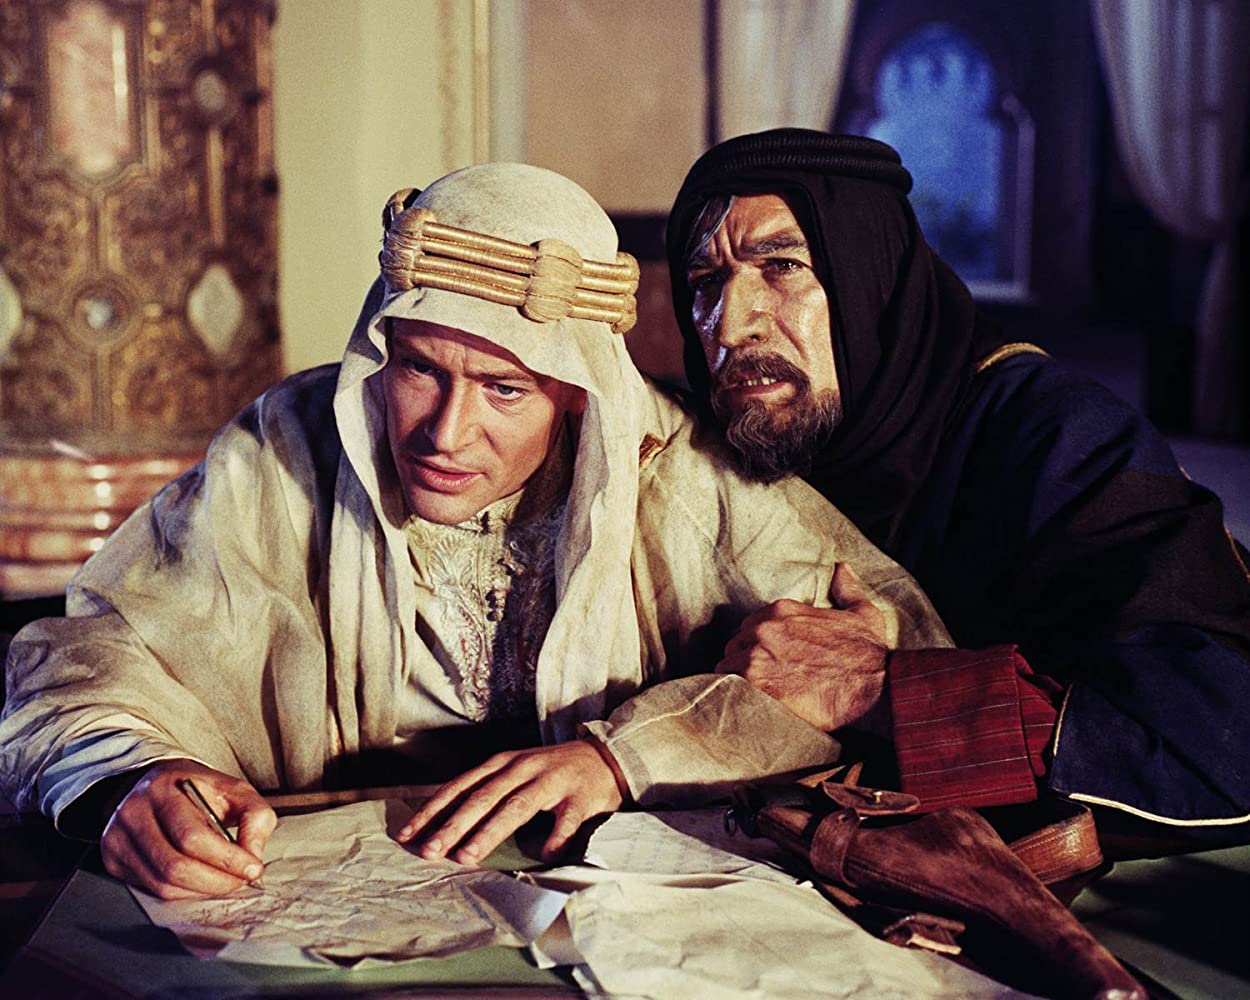 Anthony Quinn and Peter O'Toole in Lawrence of Arabia (1962)